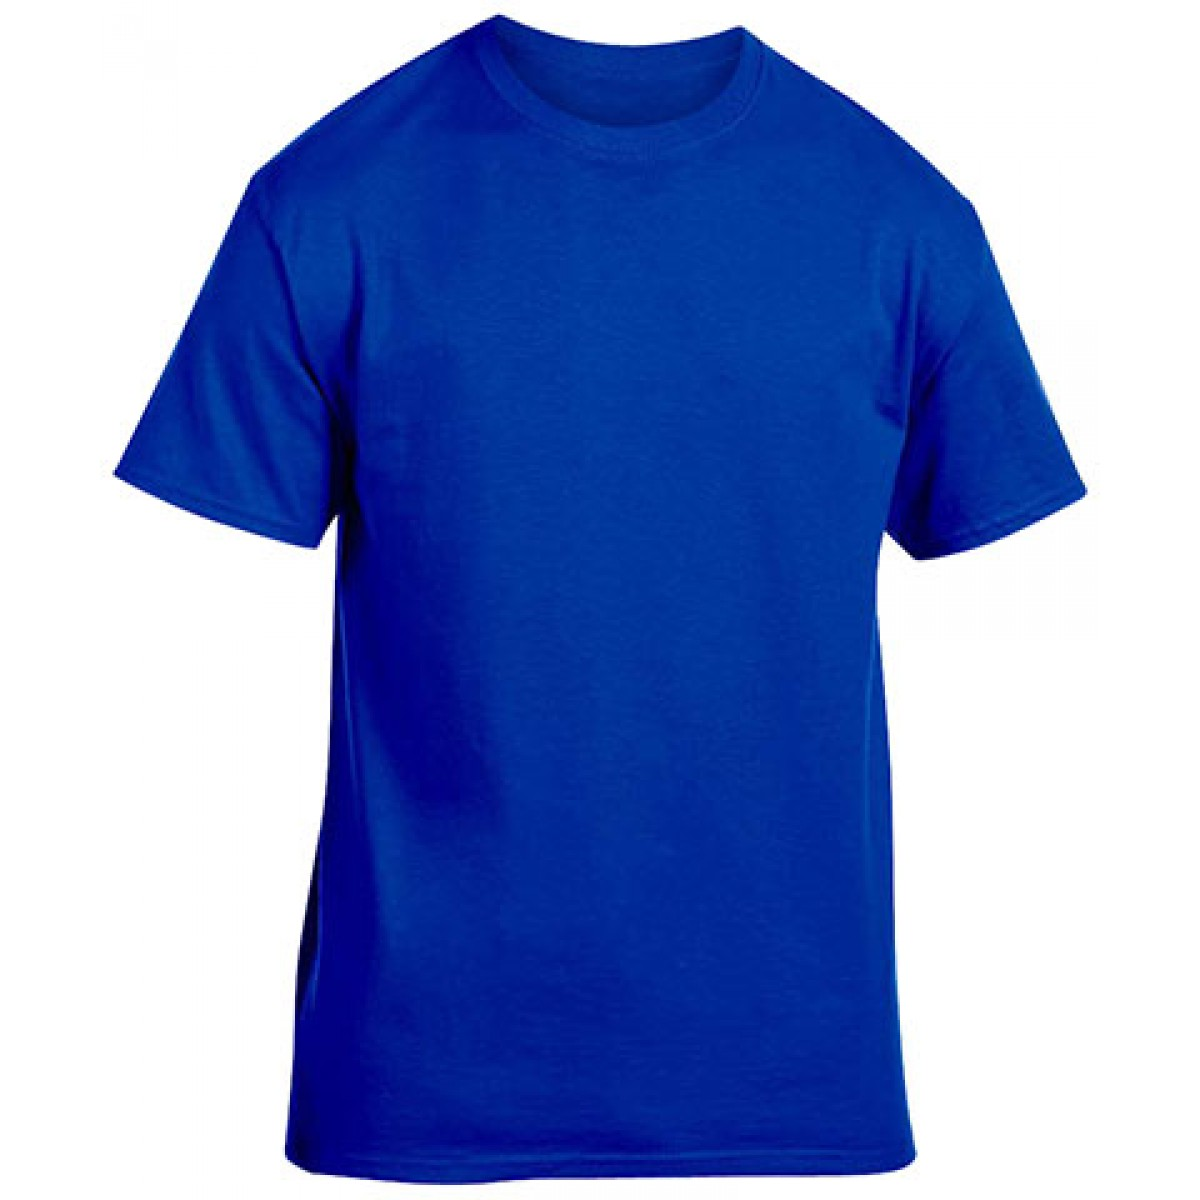 Cotton Short Sleeve T-Shirt-Royal Blue-XS